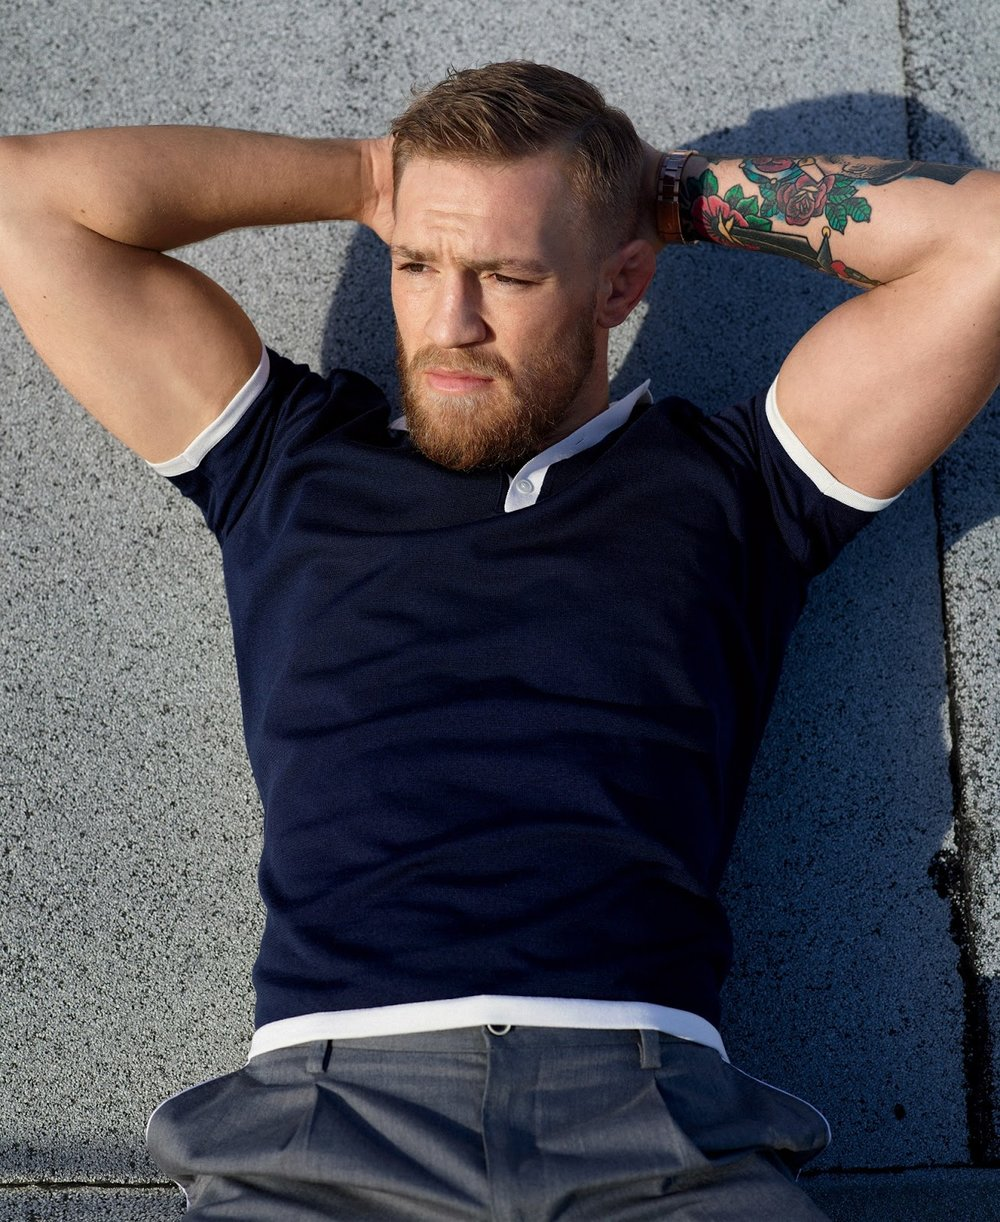 conor mcgregor-1317-gq-fecm03-01.jpg